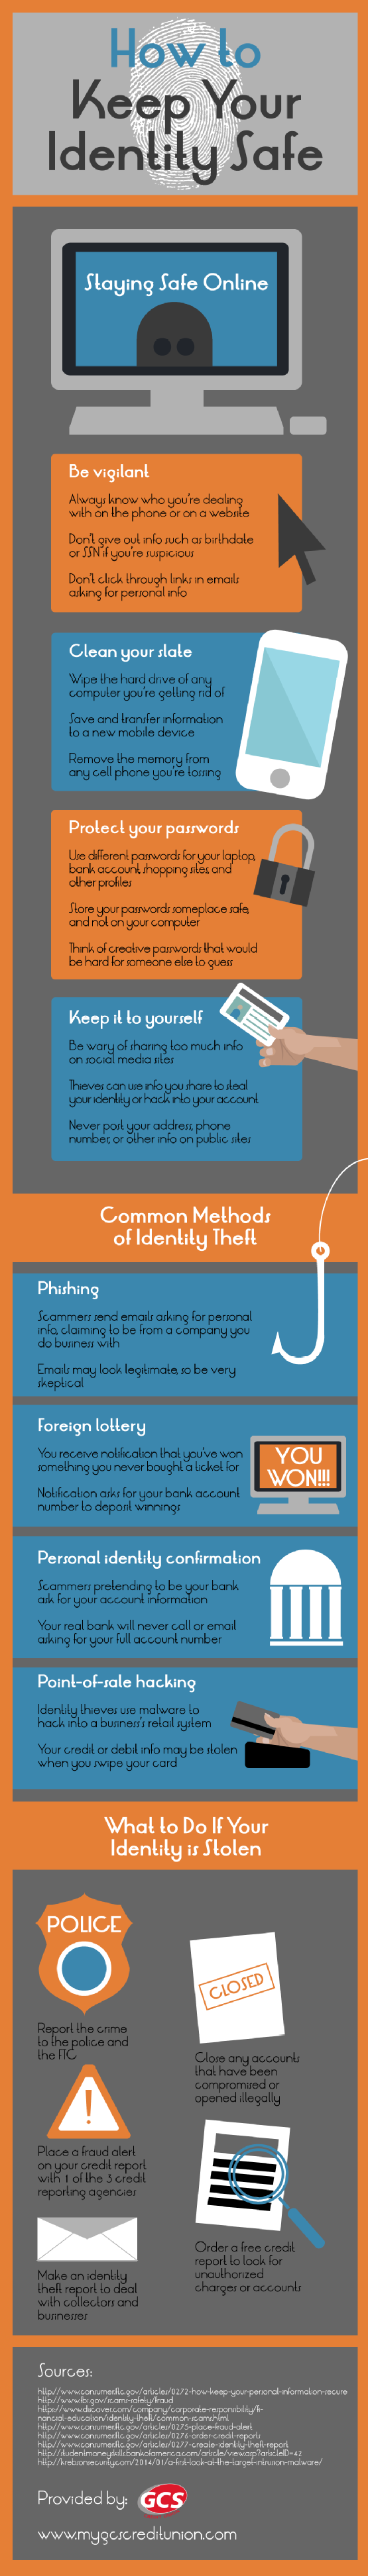 Infographic: How to Keep Your Identity Safe